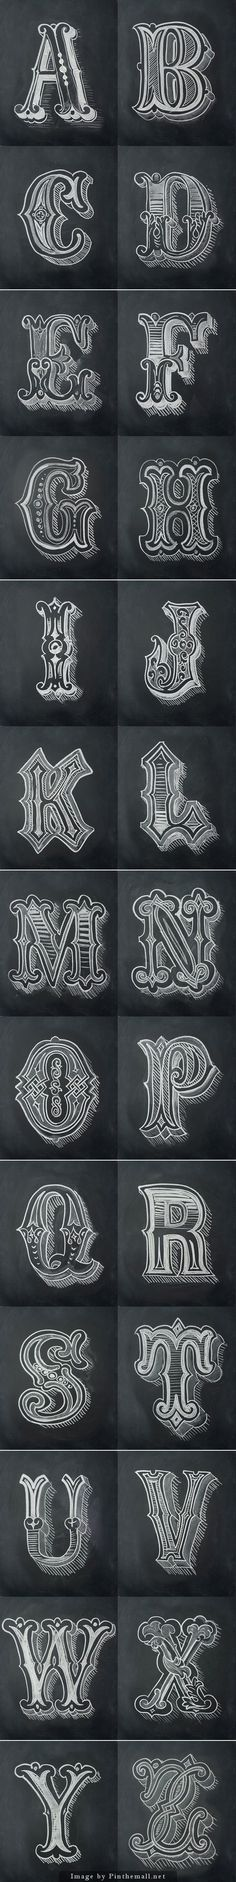 Chalk Alphabet by Antonio Rodrigues Jr... - a grouped images picture - Pin Them All #Calligraphy